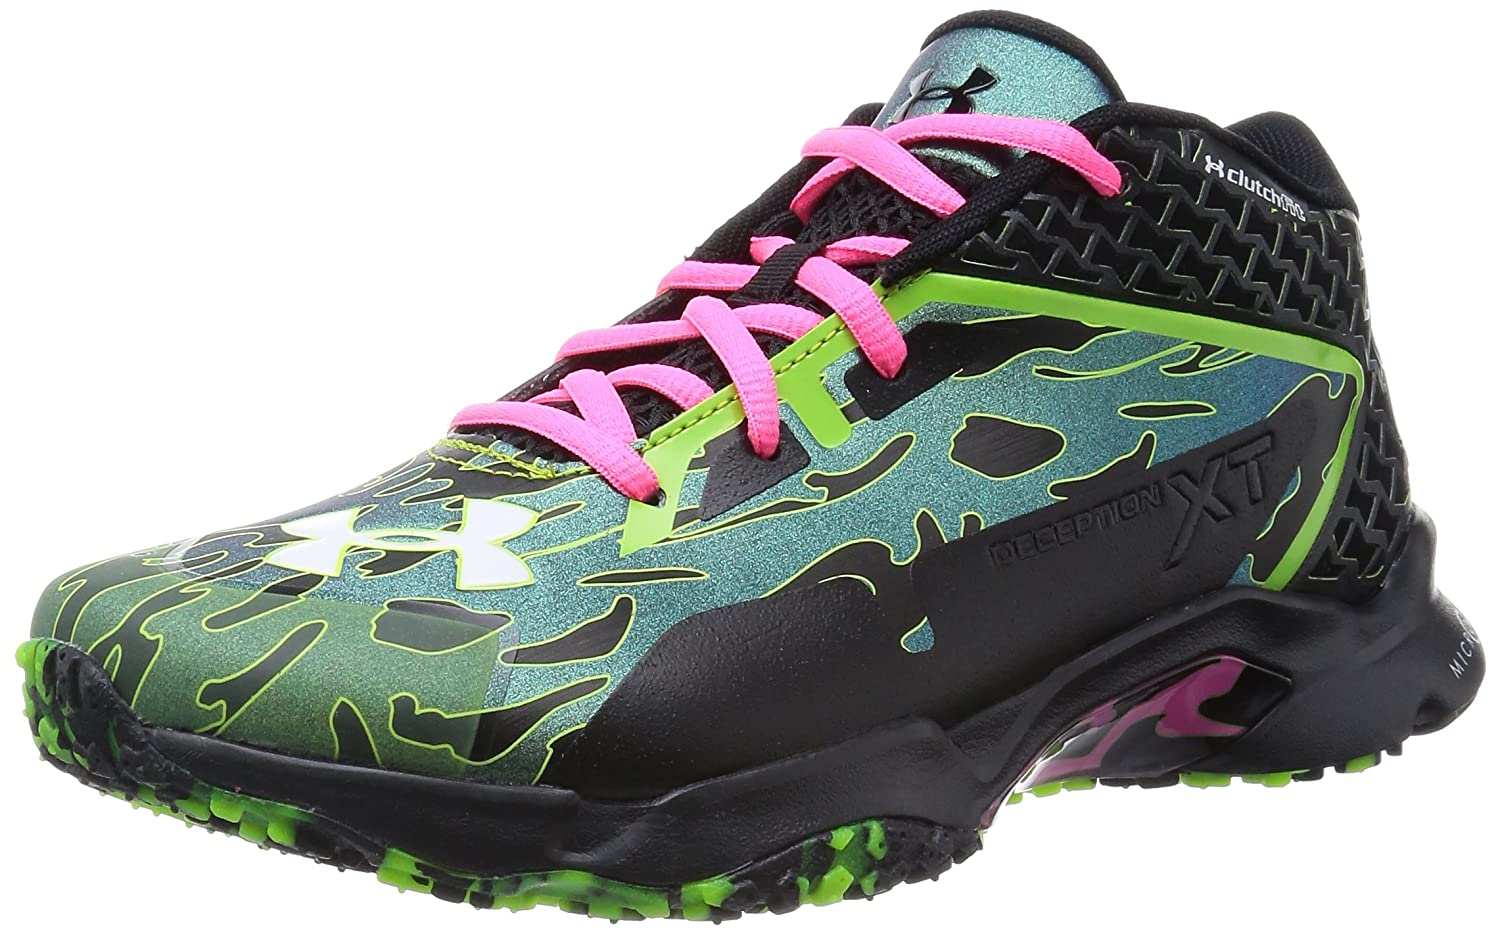 de3a20a158b0 Under Armour Ua Micro G Deception Xt